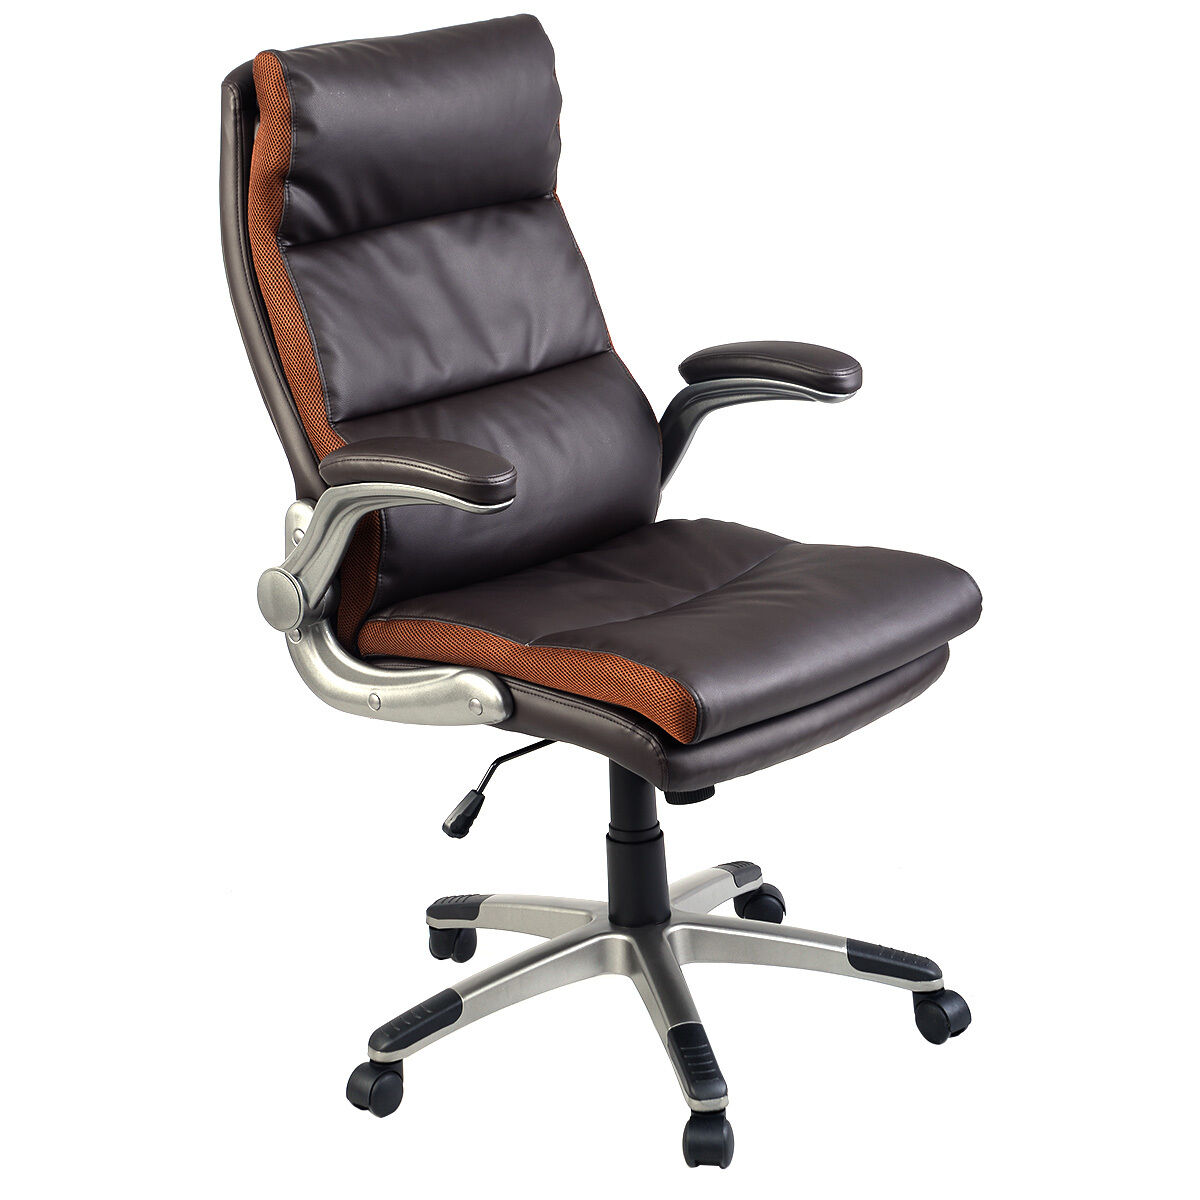 pu leather office chair slip covers target new ergonomic high back executive computer desk